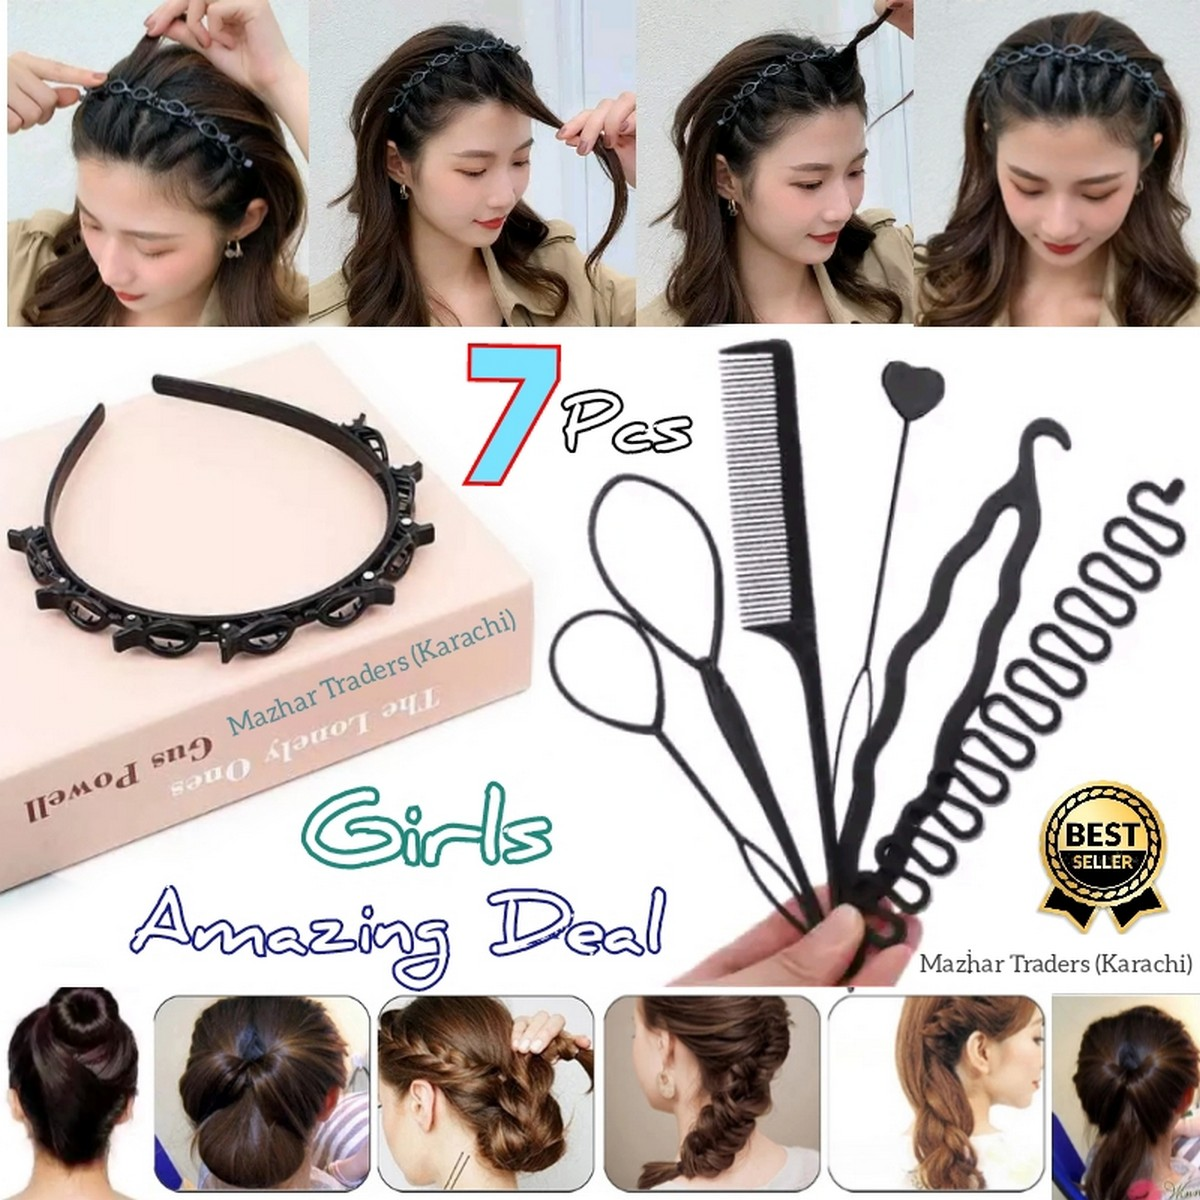 PACK Of 7 ,Black Braider Hair Style twister hair band headband Double Bangs Hairstyle Hairpin, Braids Tools with Zig Zag Pony Tail Makers Professional Braids Tools Hair Styling Kits For Women Girls  Hair Accessories